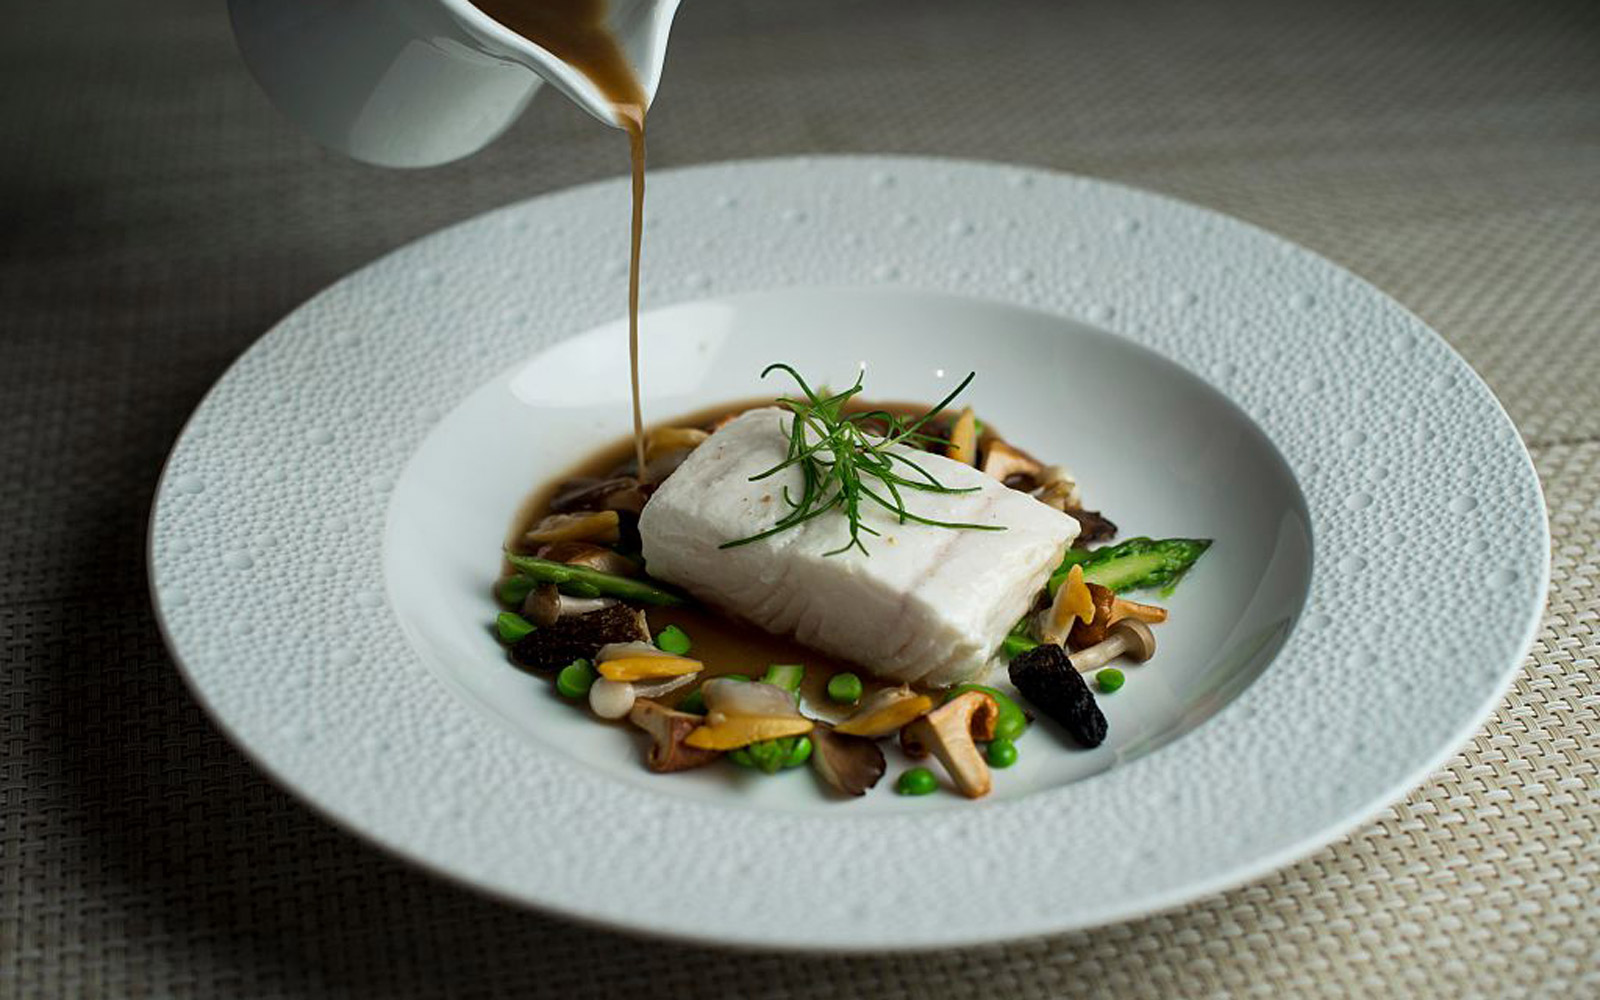 Poached Halibut with manila clams and chanterelle at Le Bernardin in Manhattan, New York